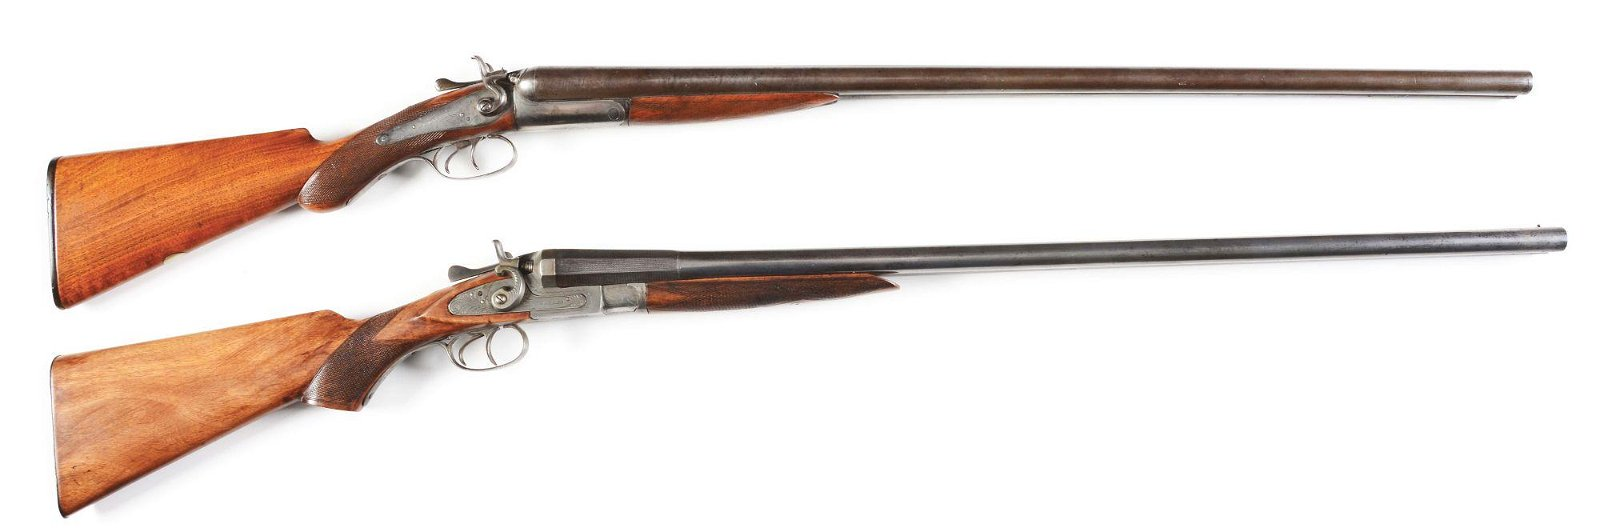 (A) LOT OF TWO: J. MANTON & CO AND BARKER DOUBLE BARREL